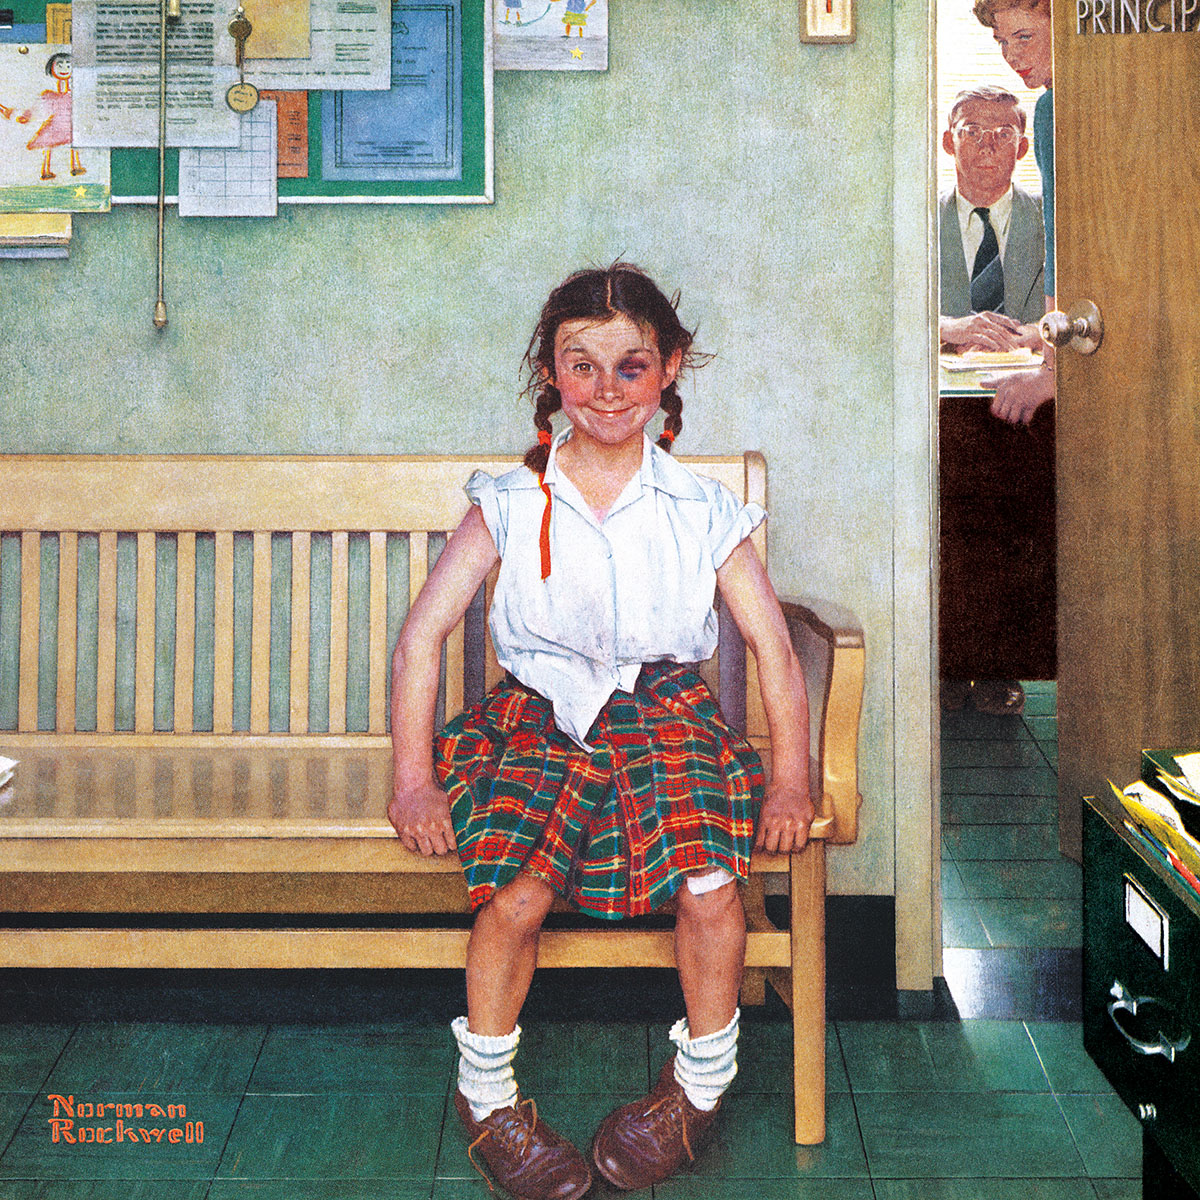 The Shiner (Saturday Evening Post Norman Rockwell) - Scratch and Dent Nostalgic / Retro Jigsaw Puzzle